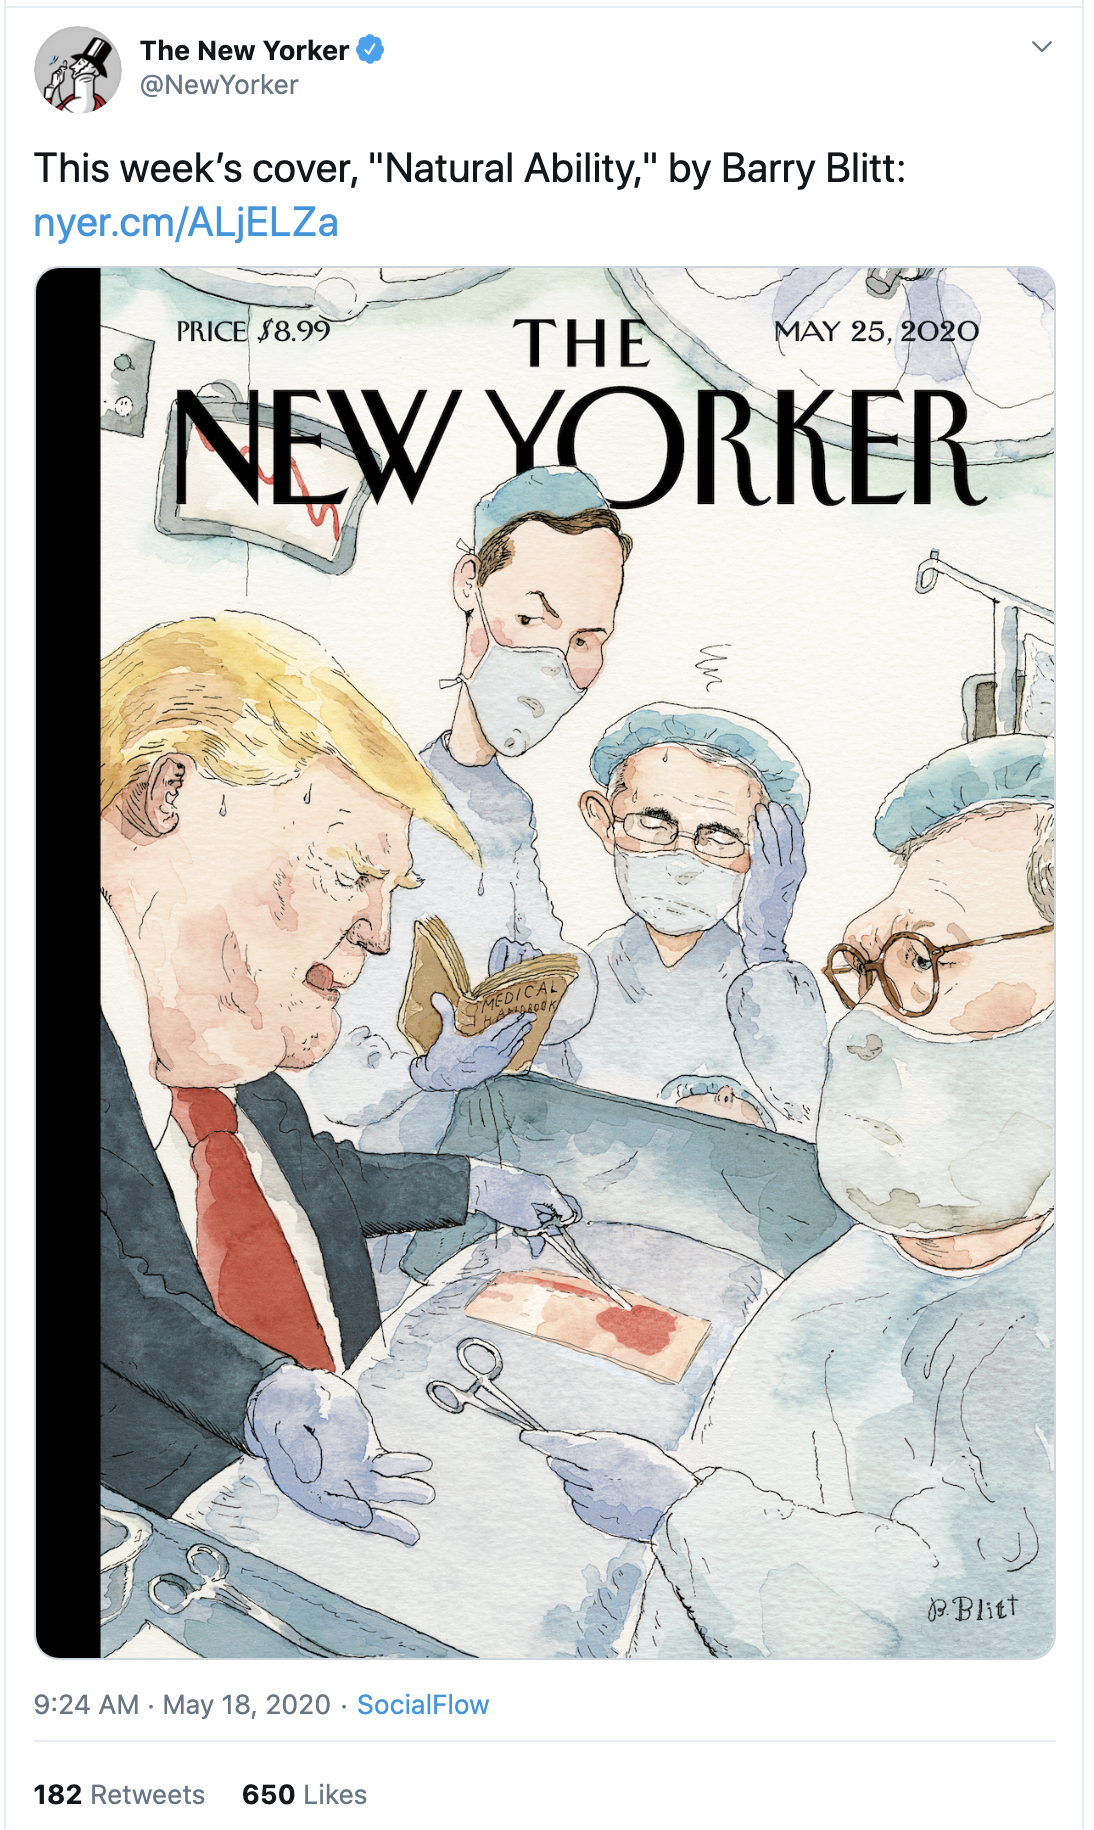 Screen-Shot-2020-05-18-at-9.54.58-AM Latest 'New Yorker' Cover Image Inspired By Trump Coronavirus Featured Media Politics Top Stories